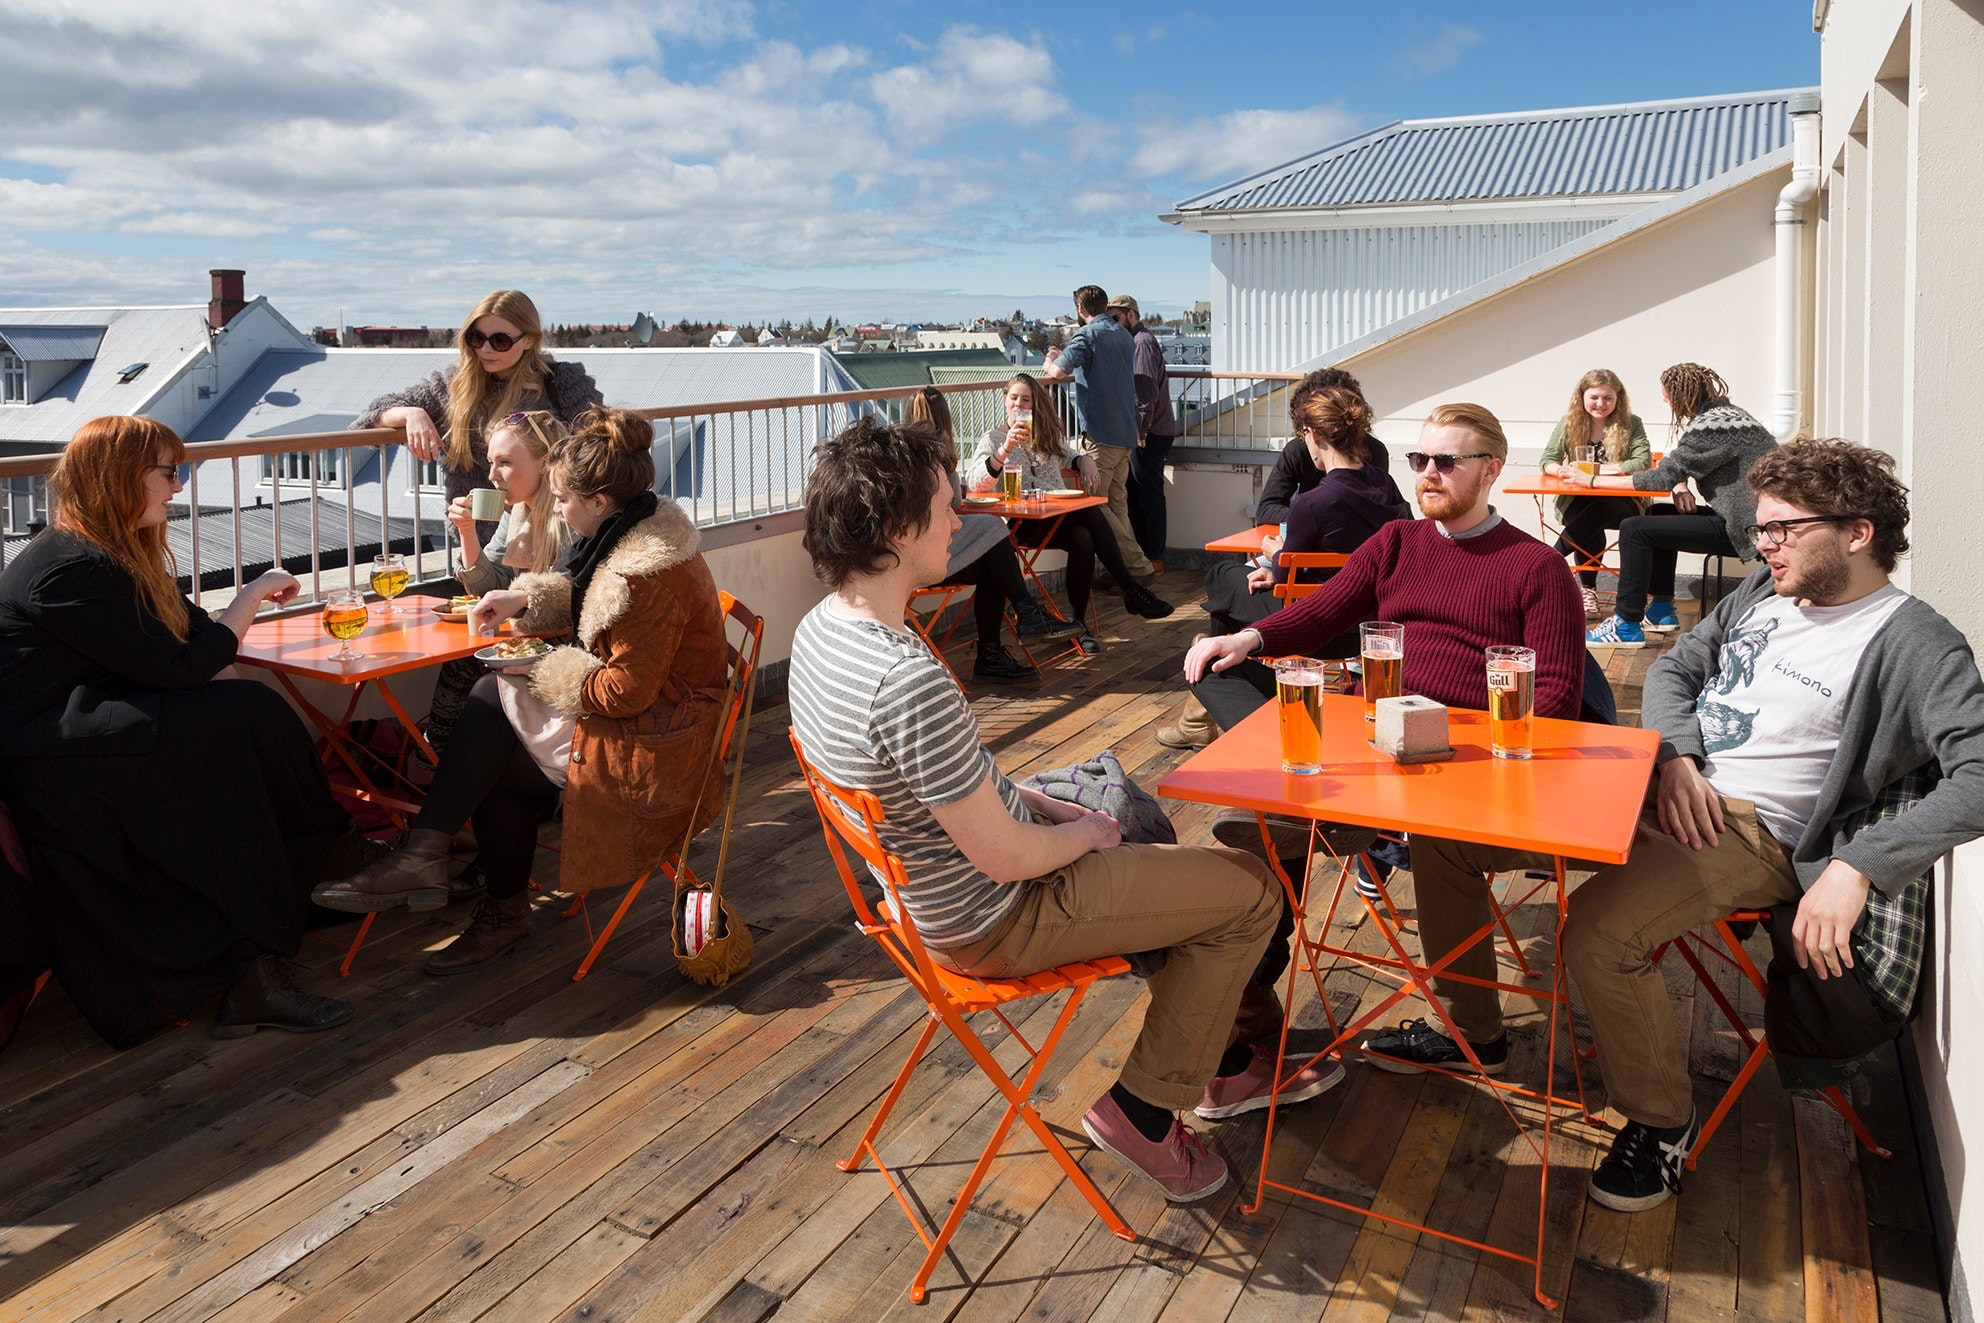 Loft Hostel is best known, perhaps, for its outdoor seating area overlooking the main street.